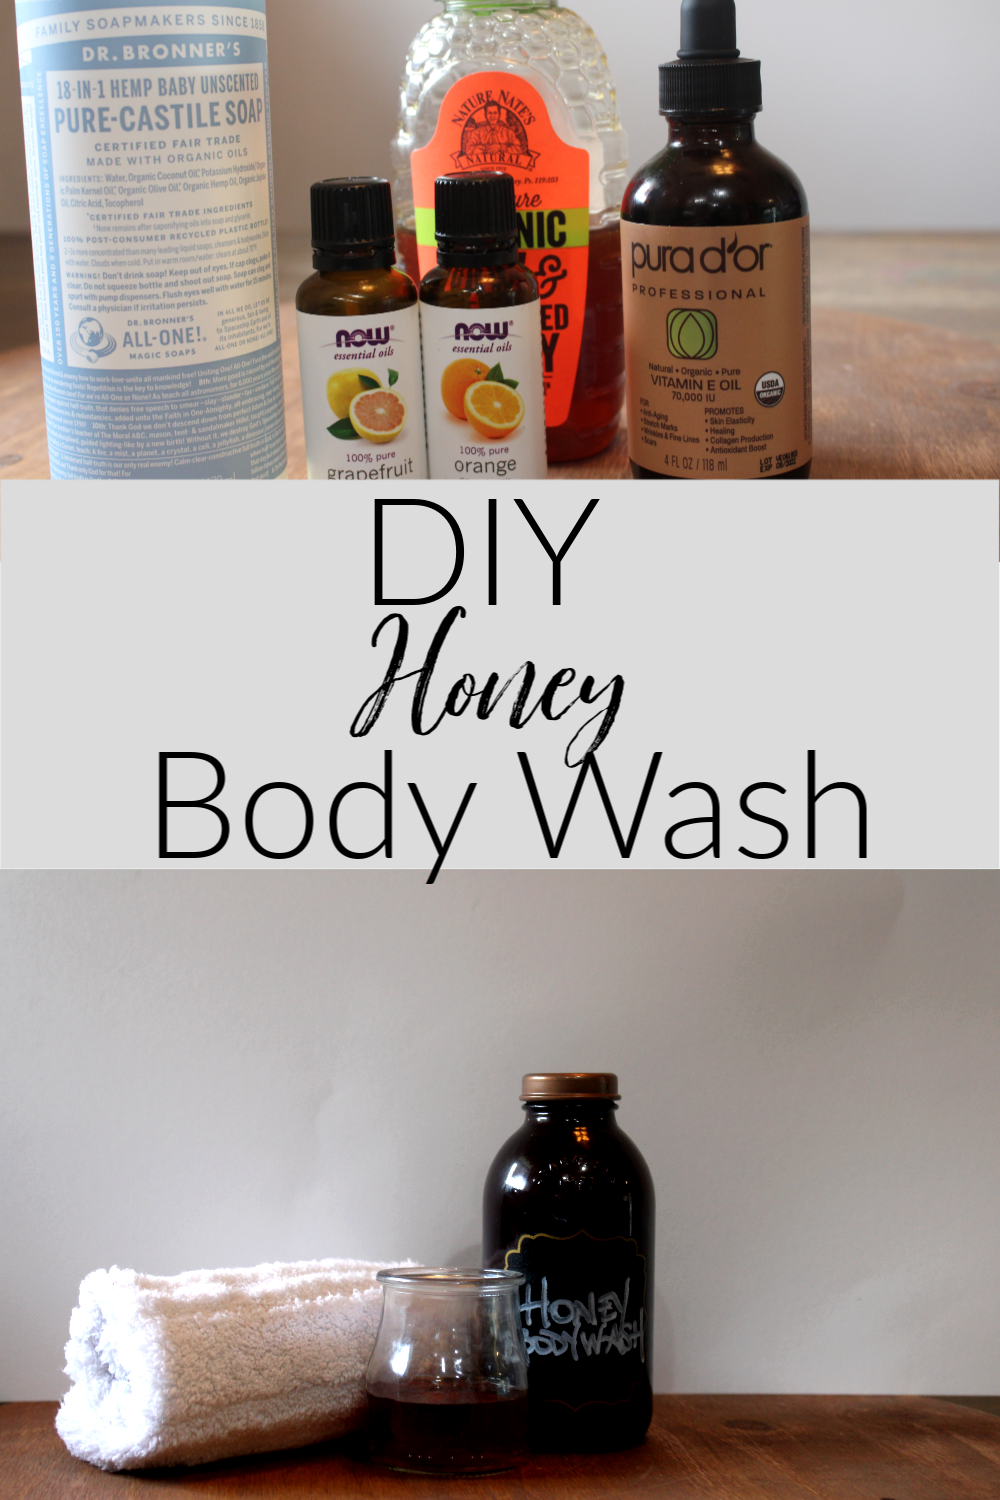 Hey guys, I'm back with another great beauty DIY just in time for mother's day! This DIY Honey Body Wash is luxurious without spending a fortune!